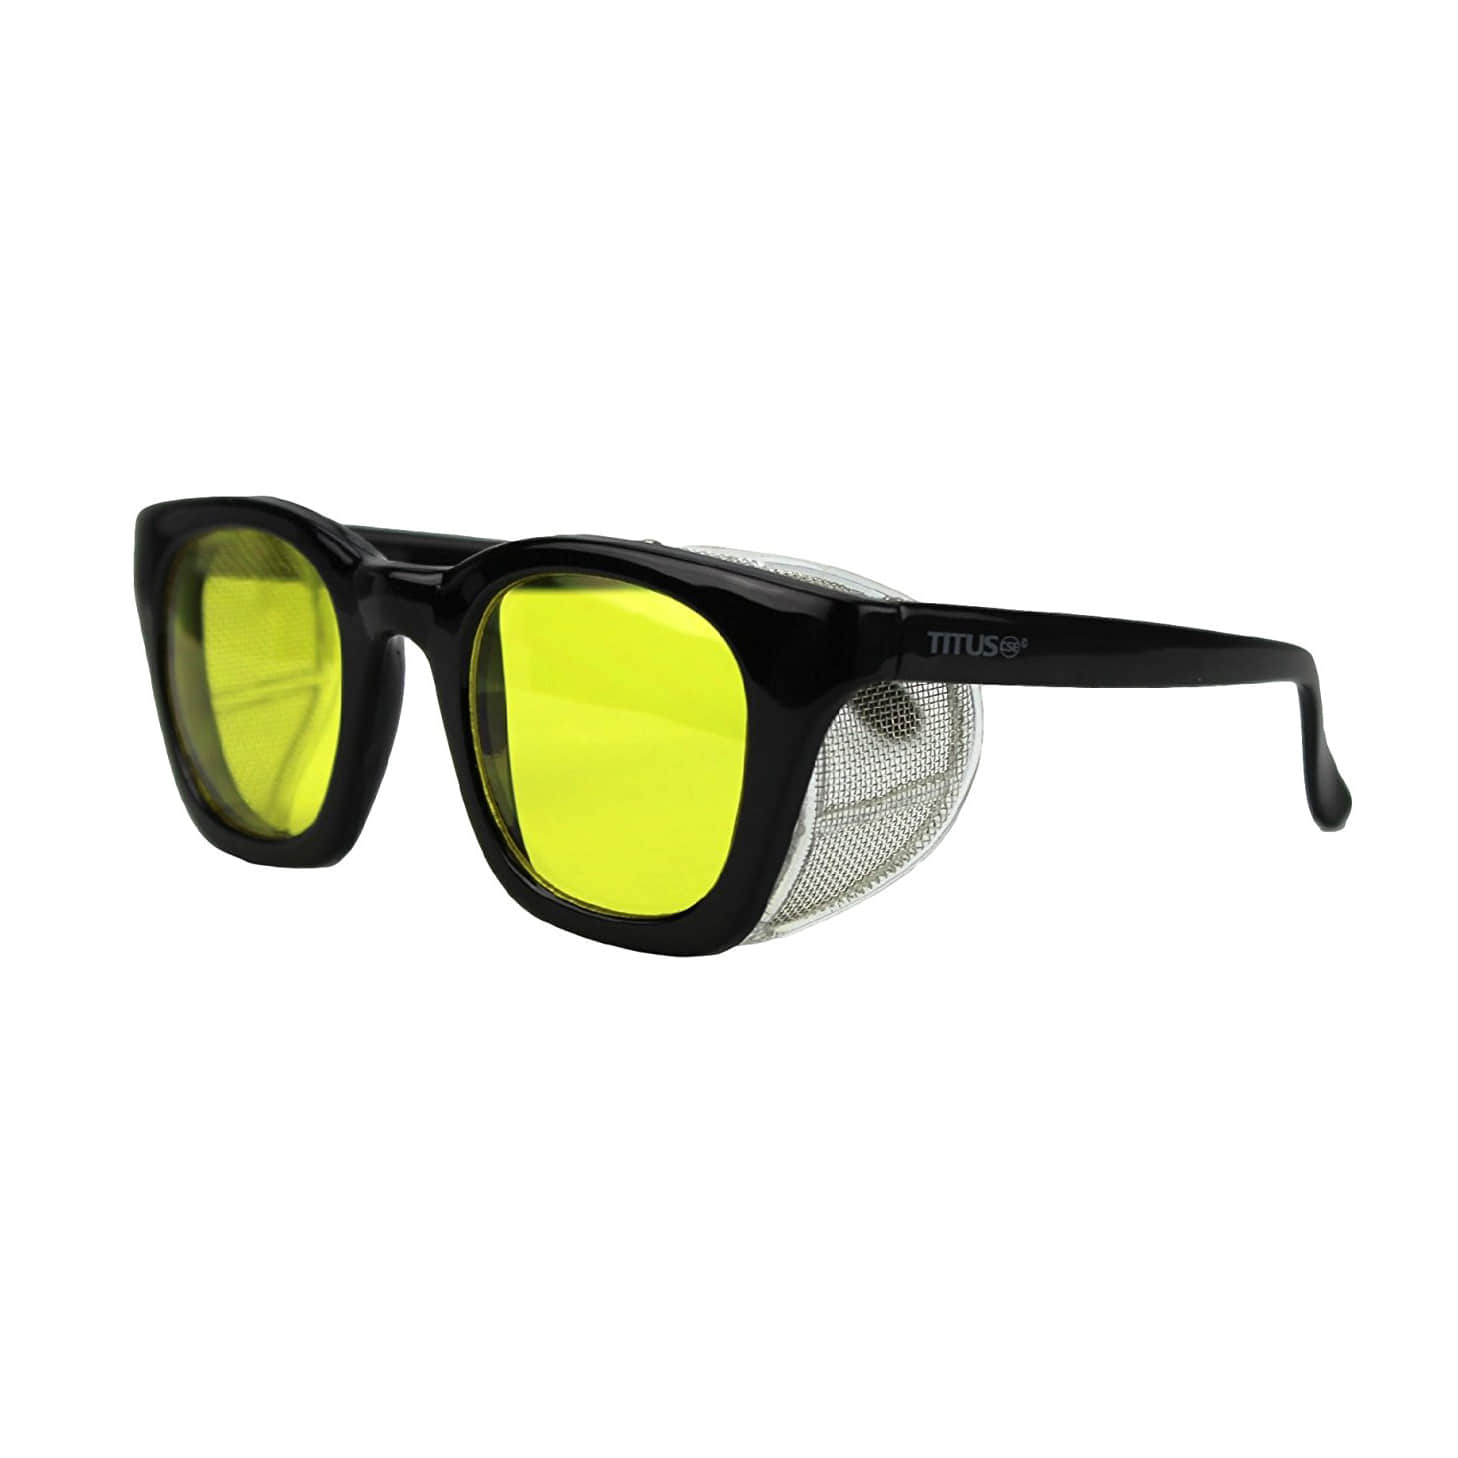 TITUS WIND SHIELD GLASSES GLOSS BLACK / YELLOW